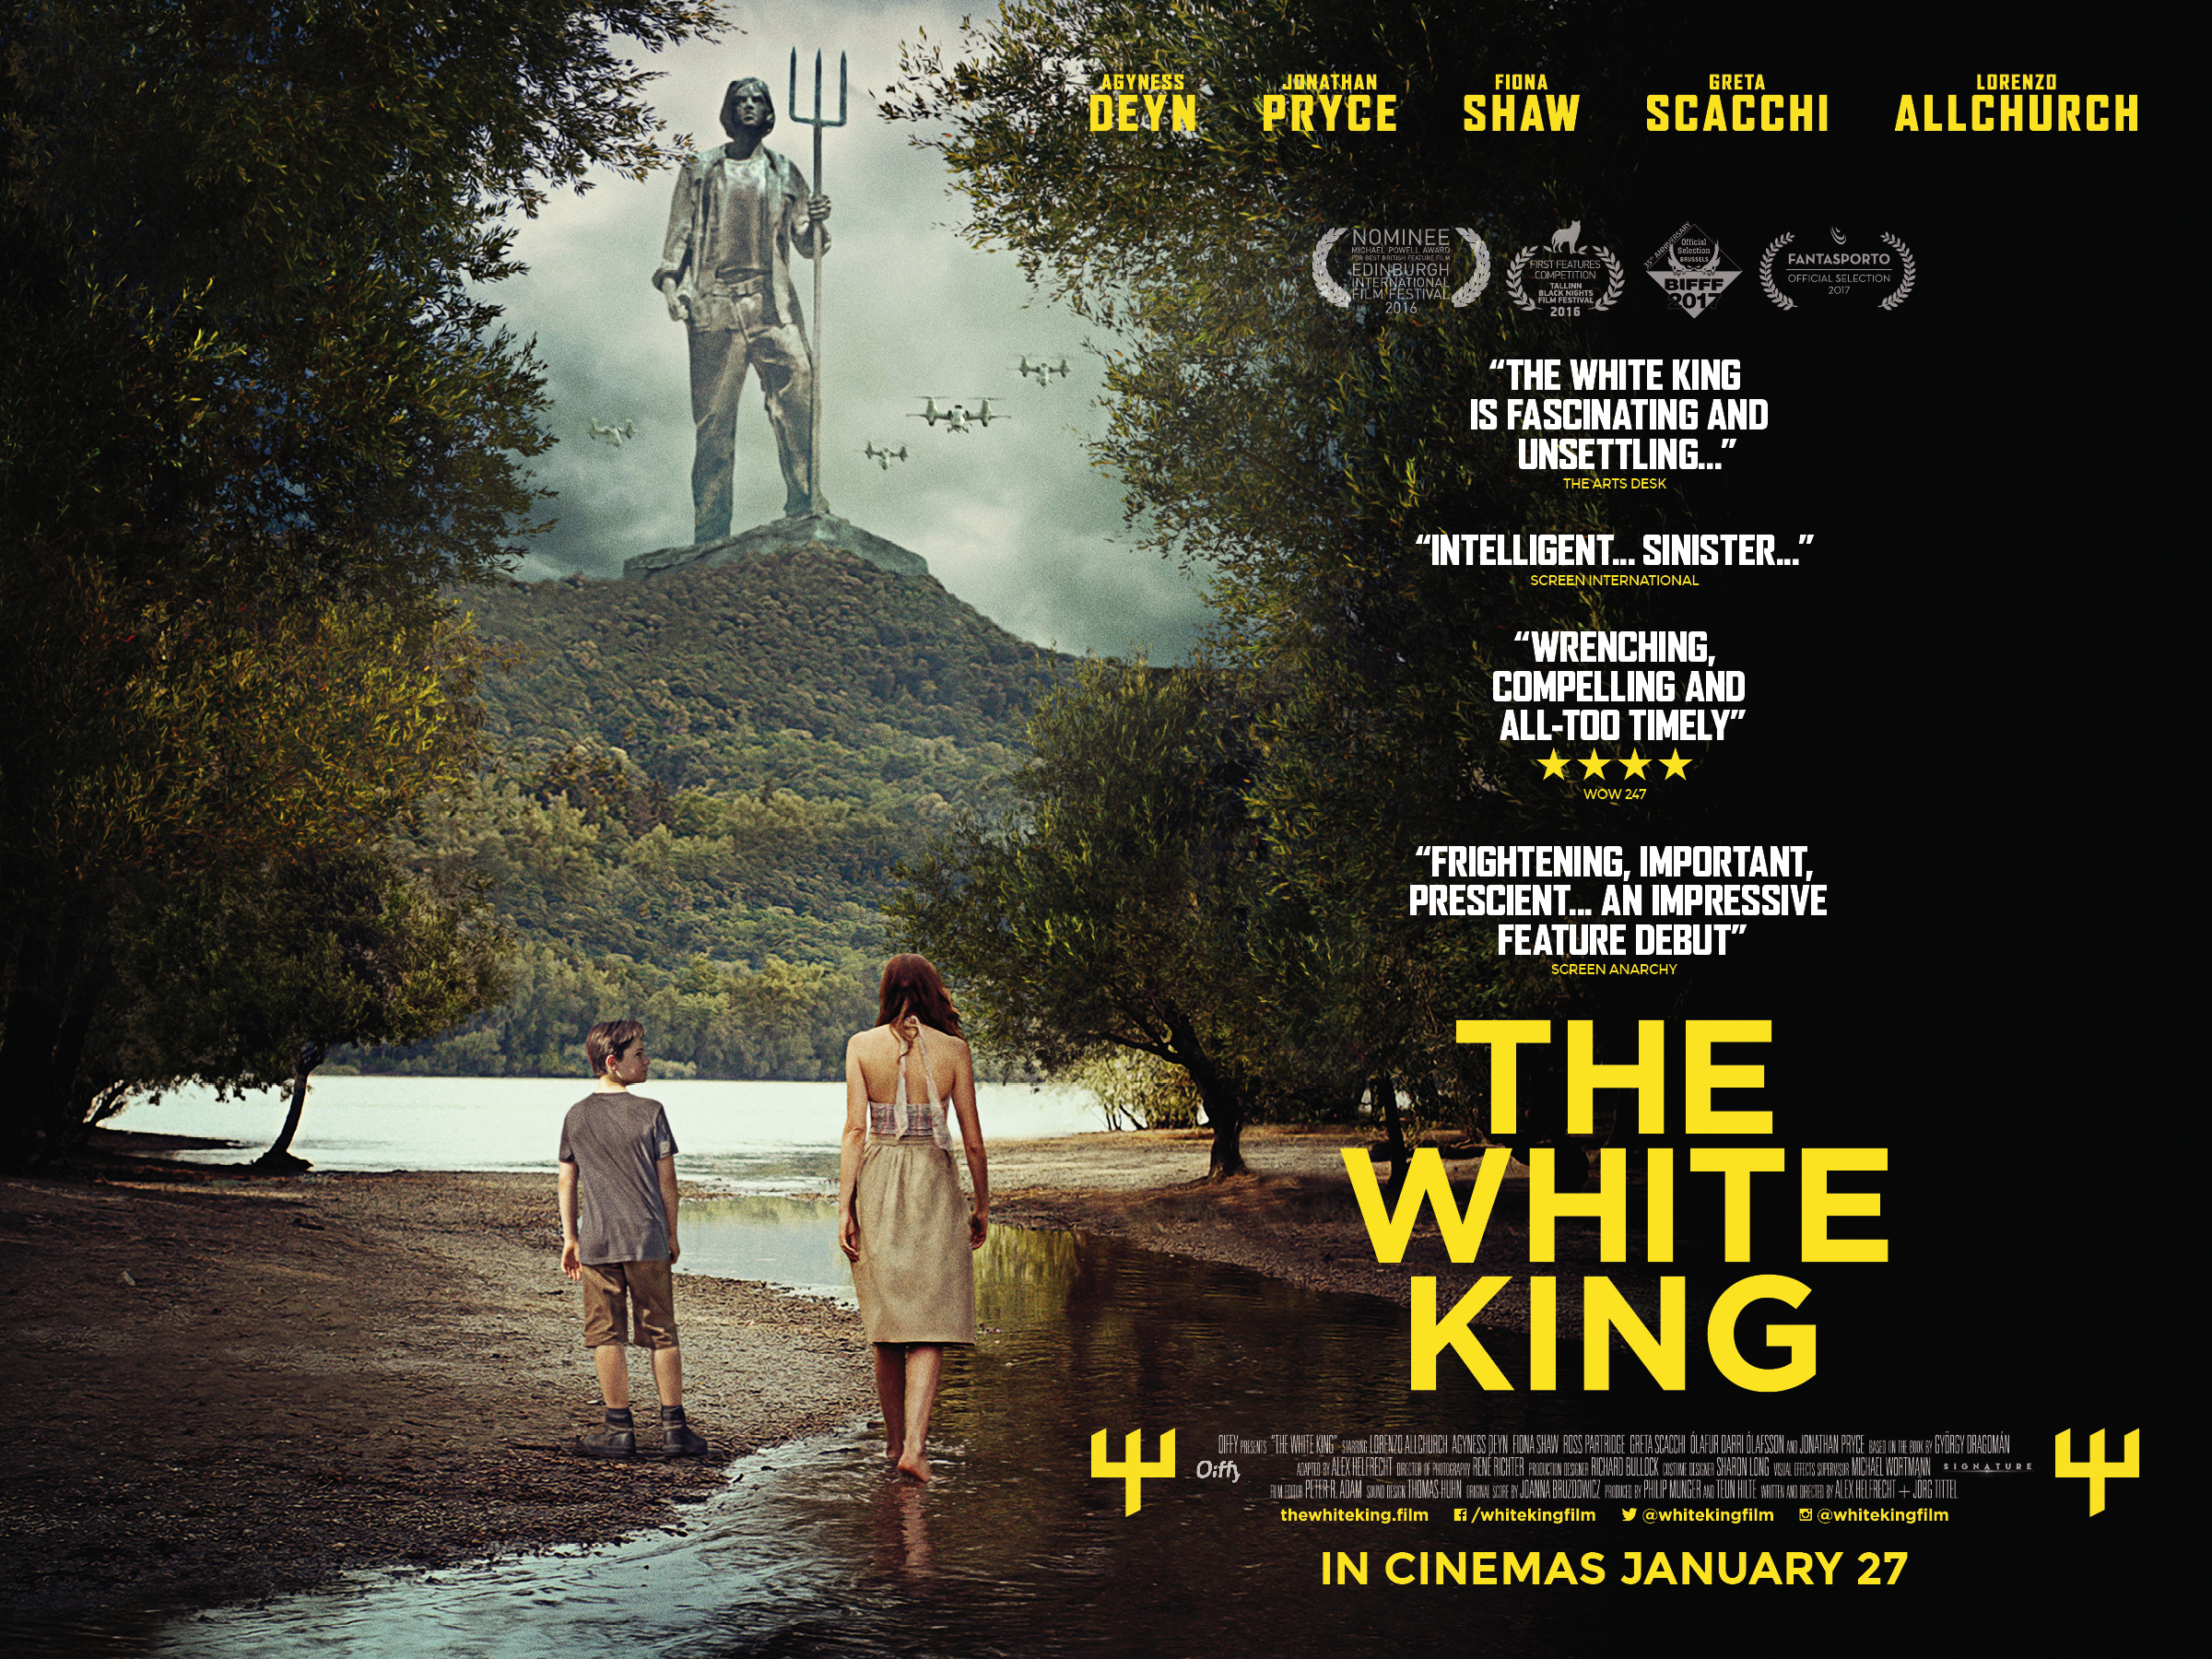 THE-WHITE-KING-THEATRICAL-QUAD.jpg